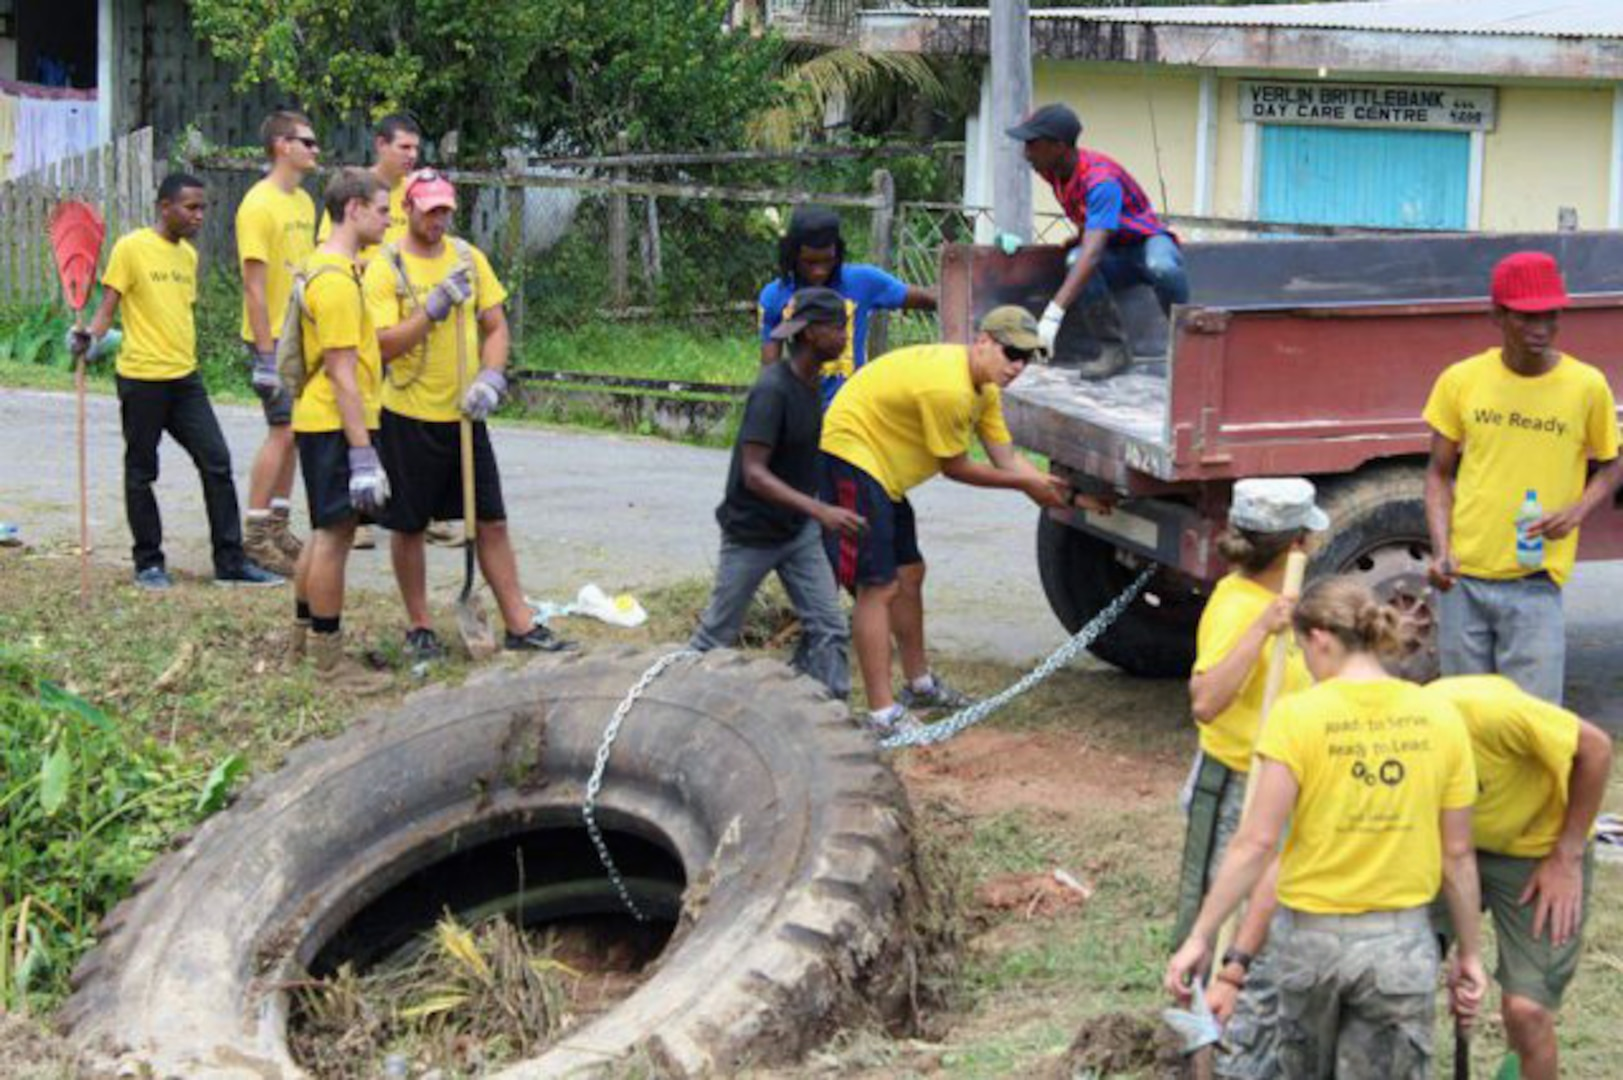 The U.S Embassy's Youth Action Network teamed up with U.S. Army ROTC cadets for a community service event in Linden, Guyana.